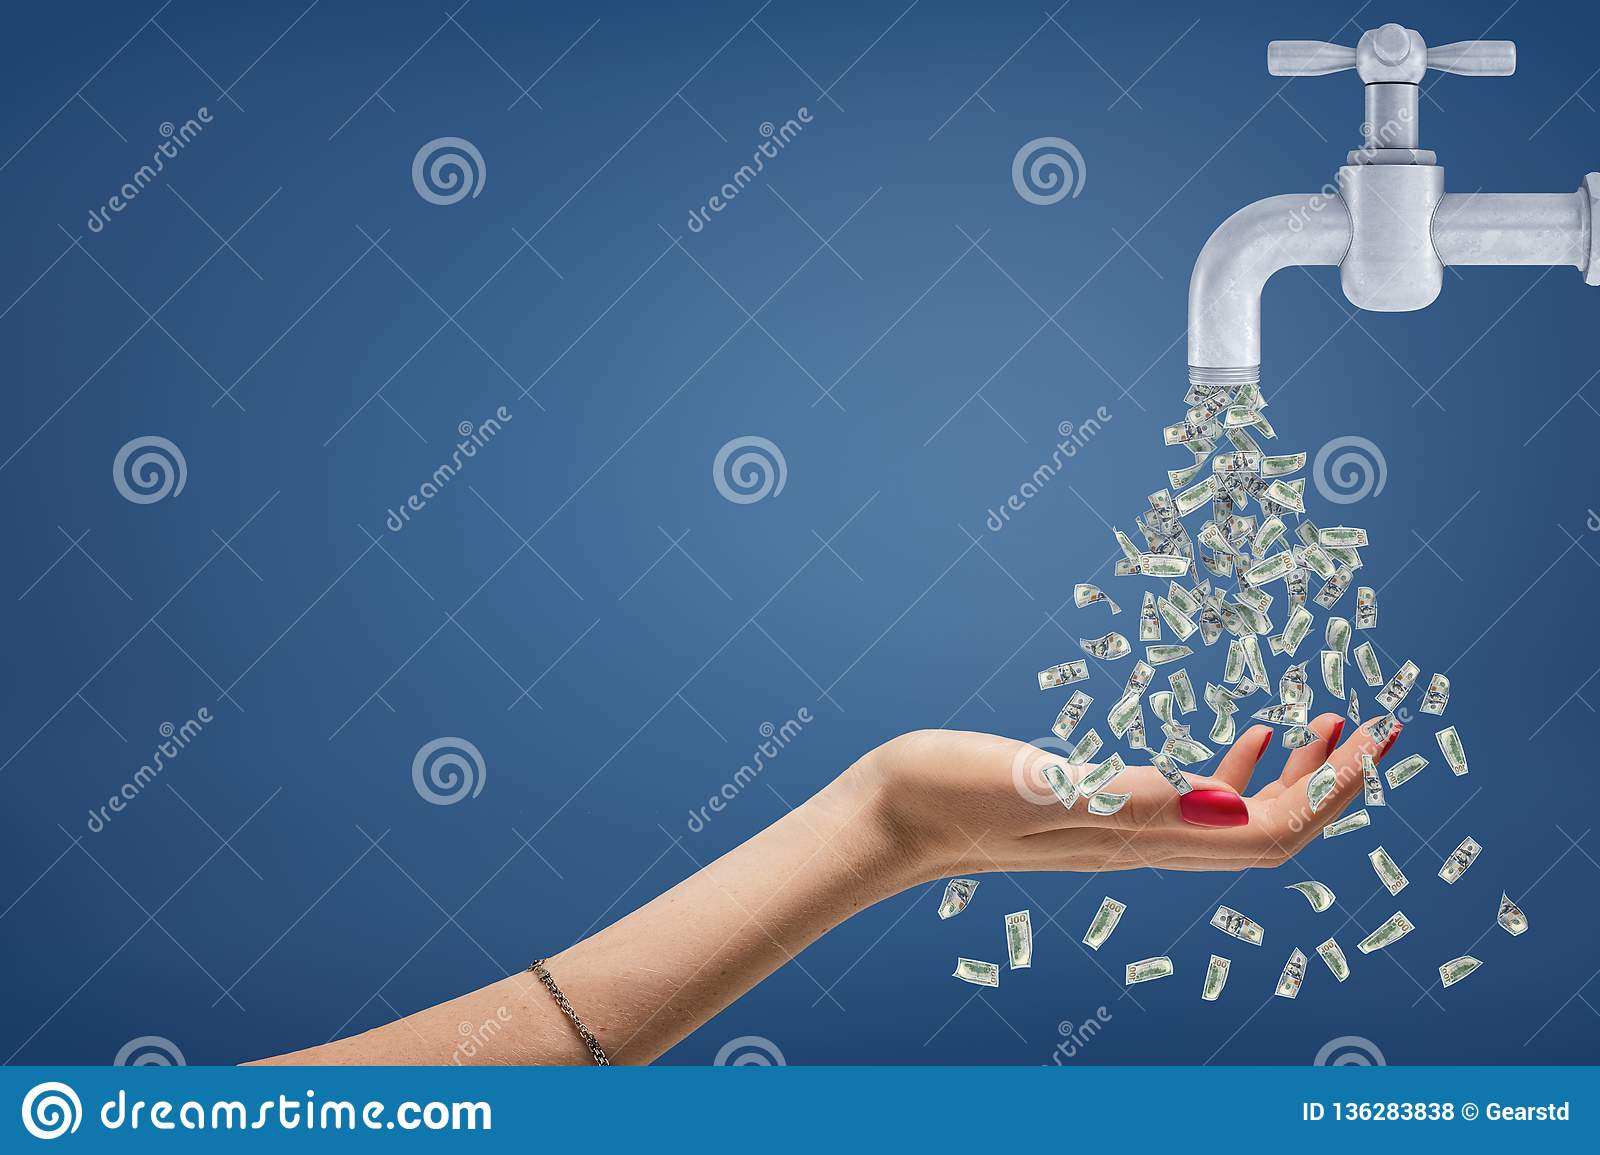 A female hand holds her hand under a stream of money flowing from a metal tap.